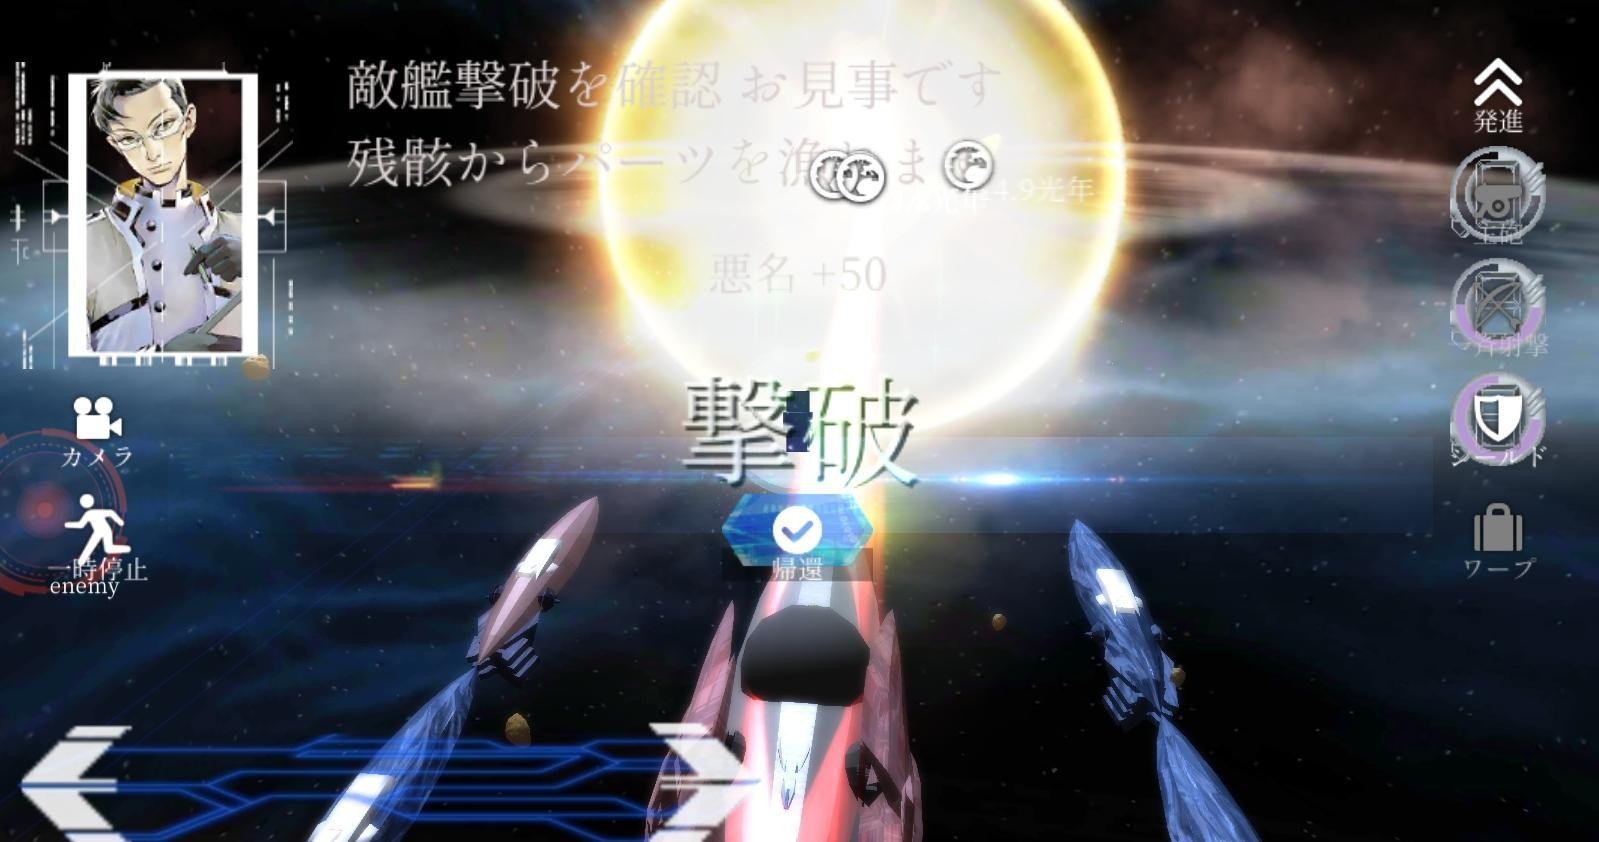 Space Pirate King(3D Battleship Battle) 49.0 Screenshot 14